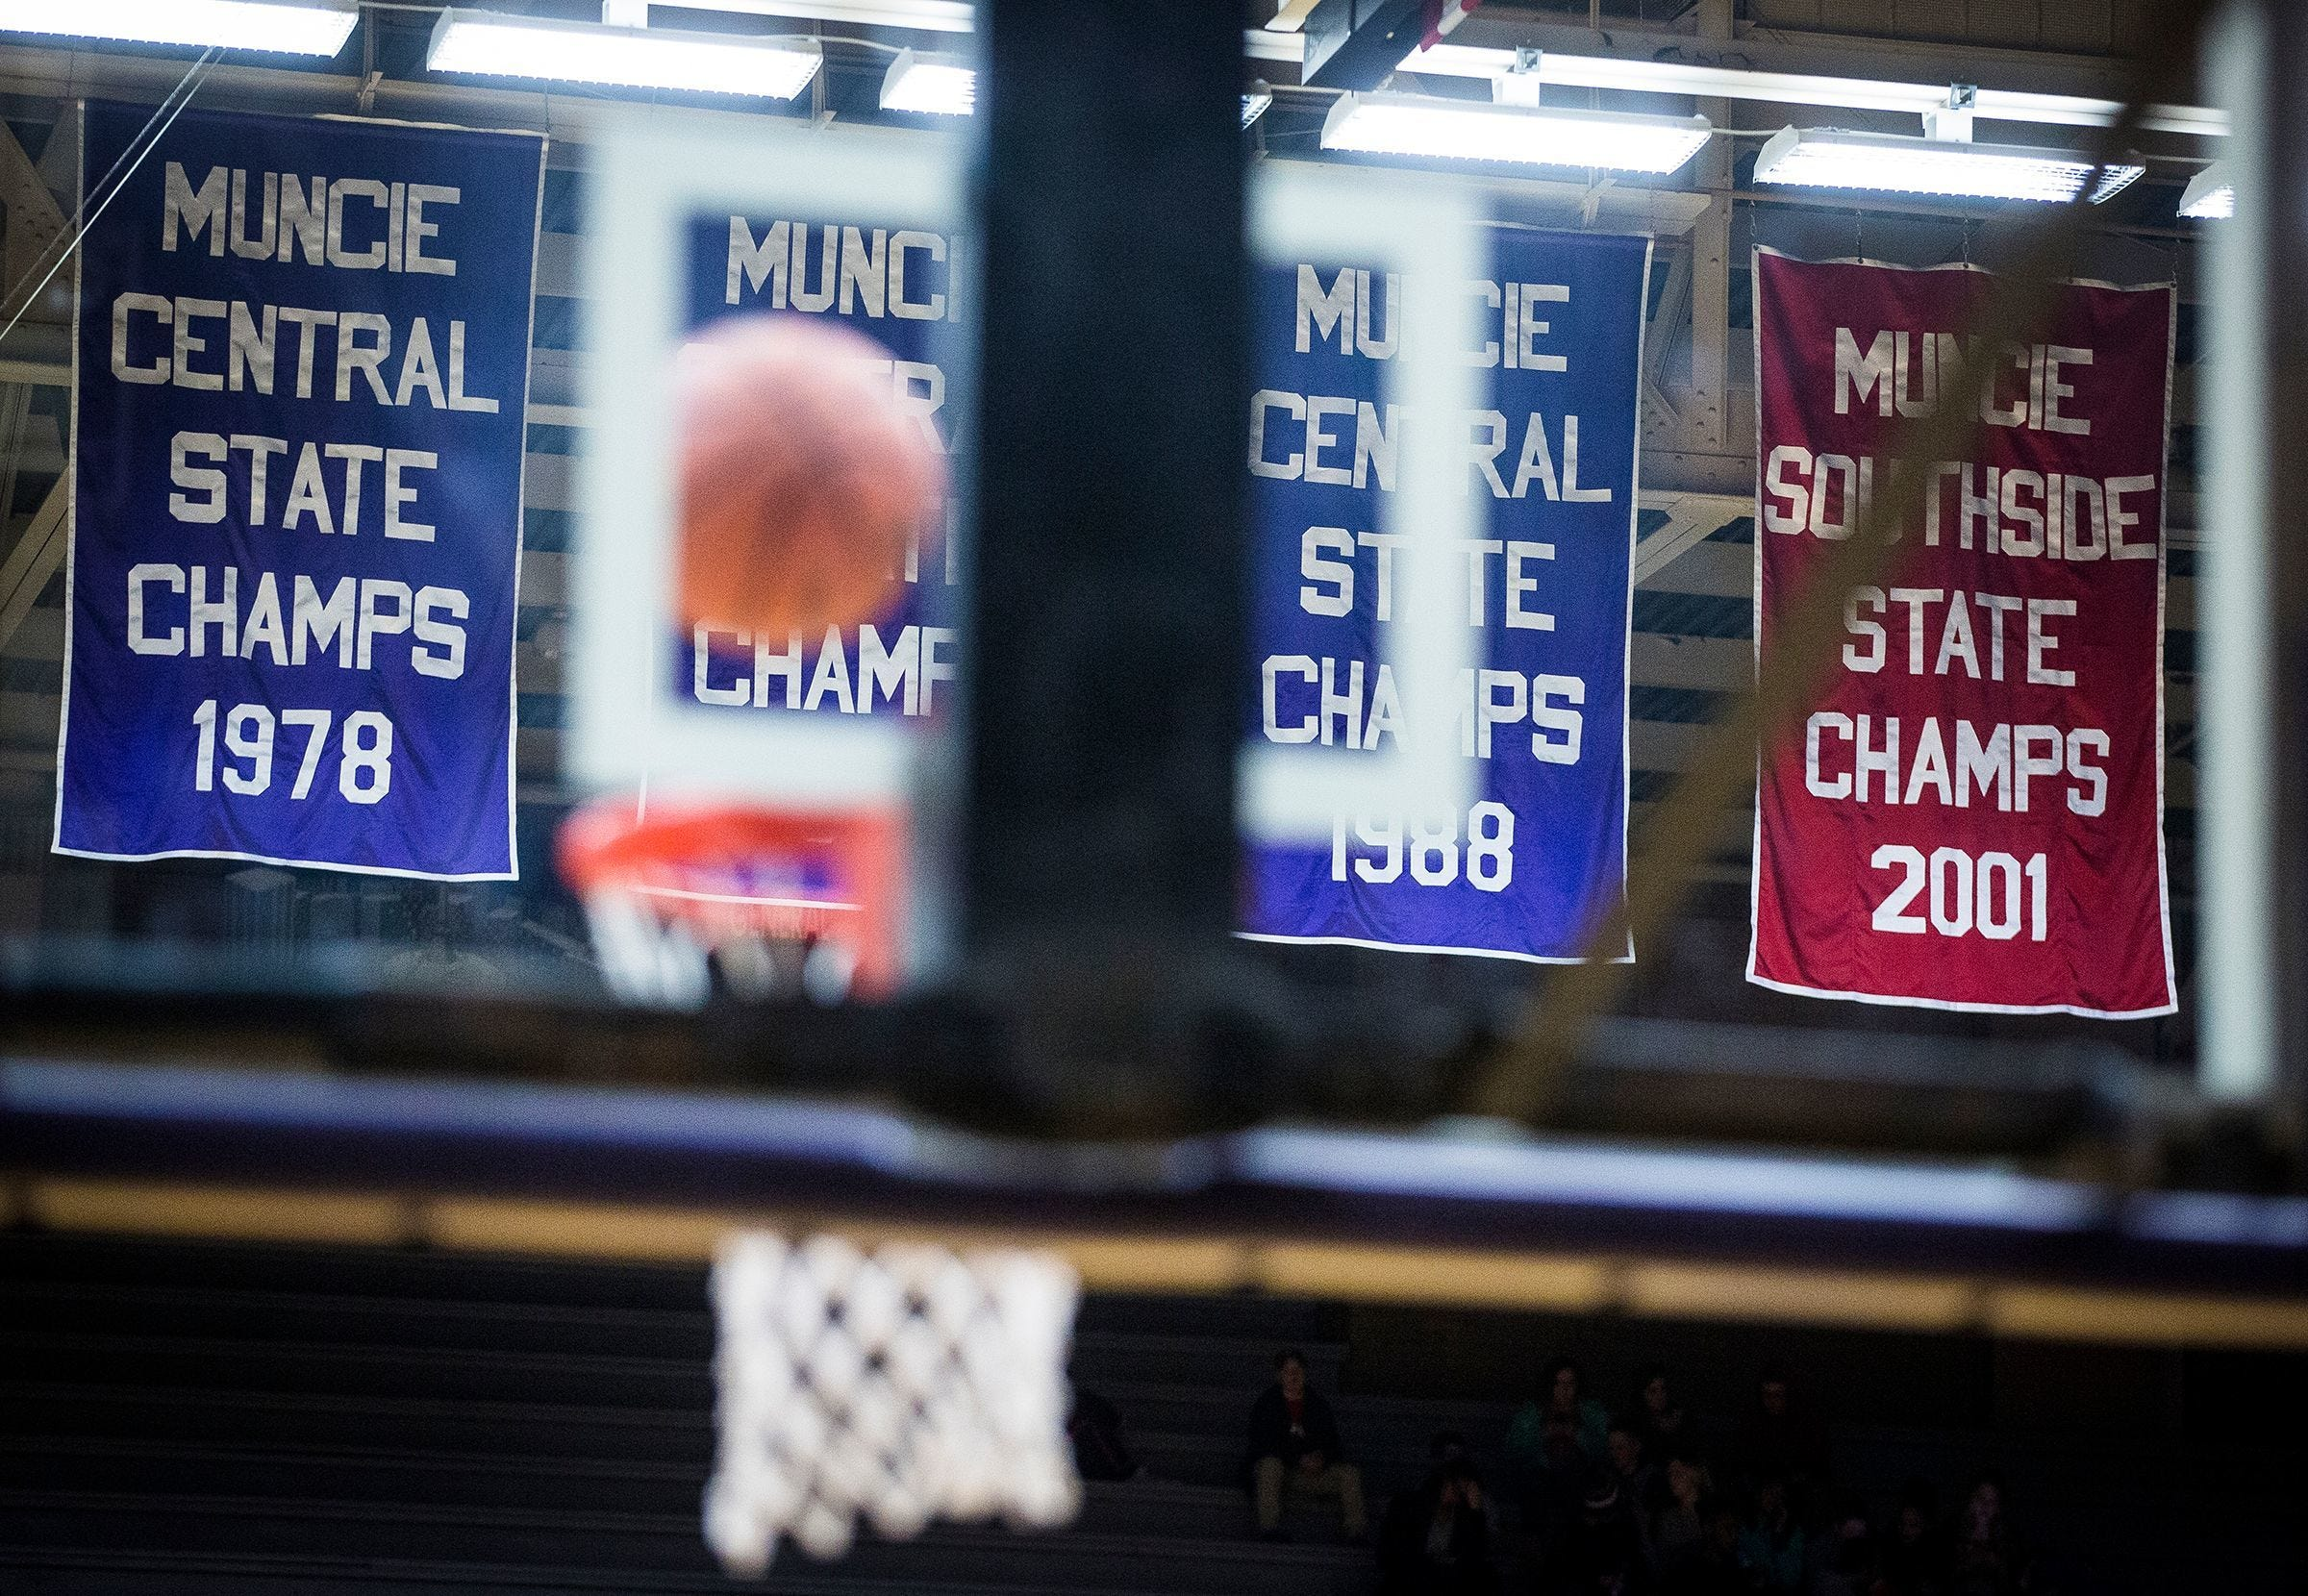 State championship banners at the Muncie Fieldhouse.